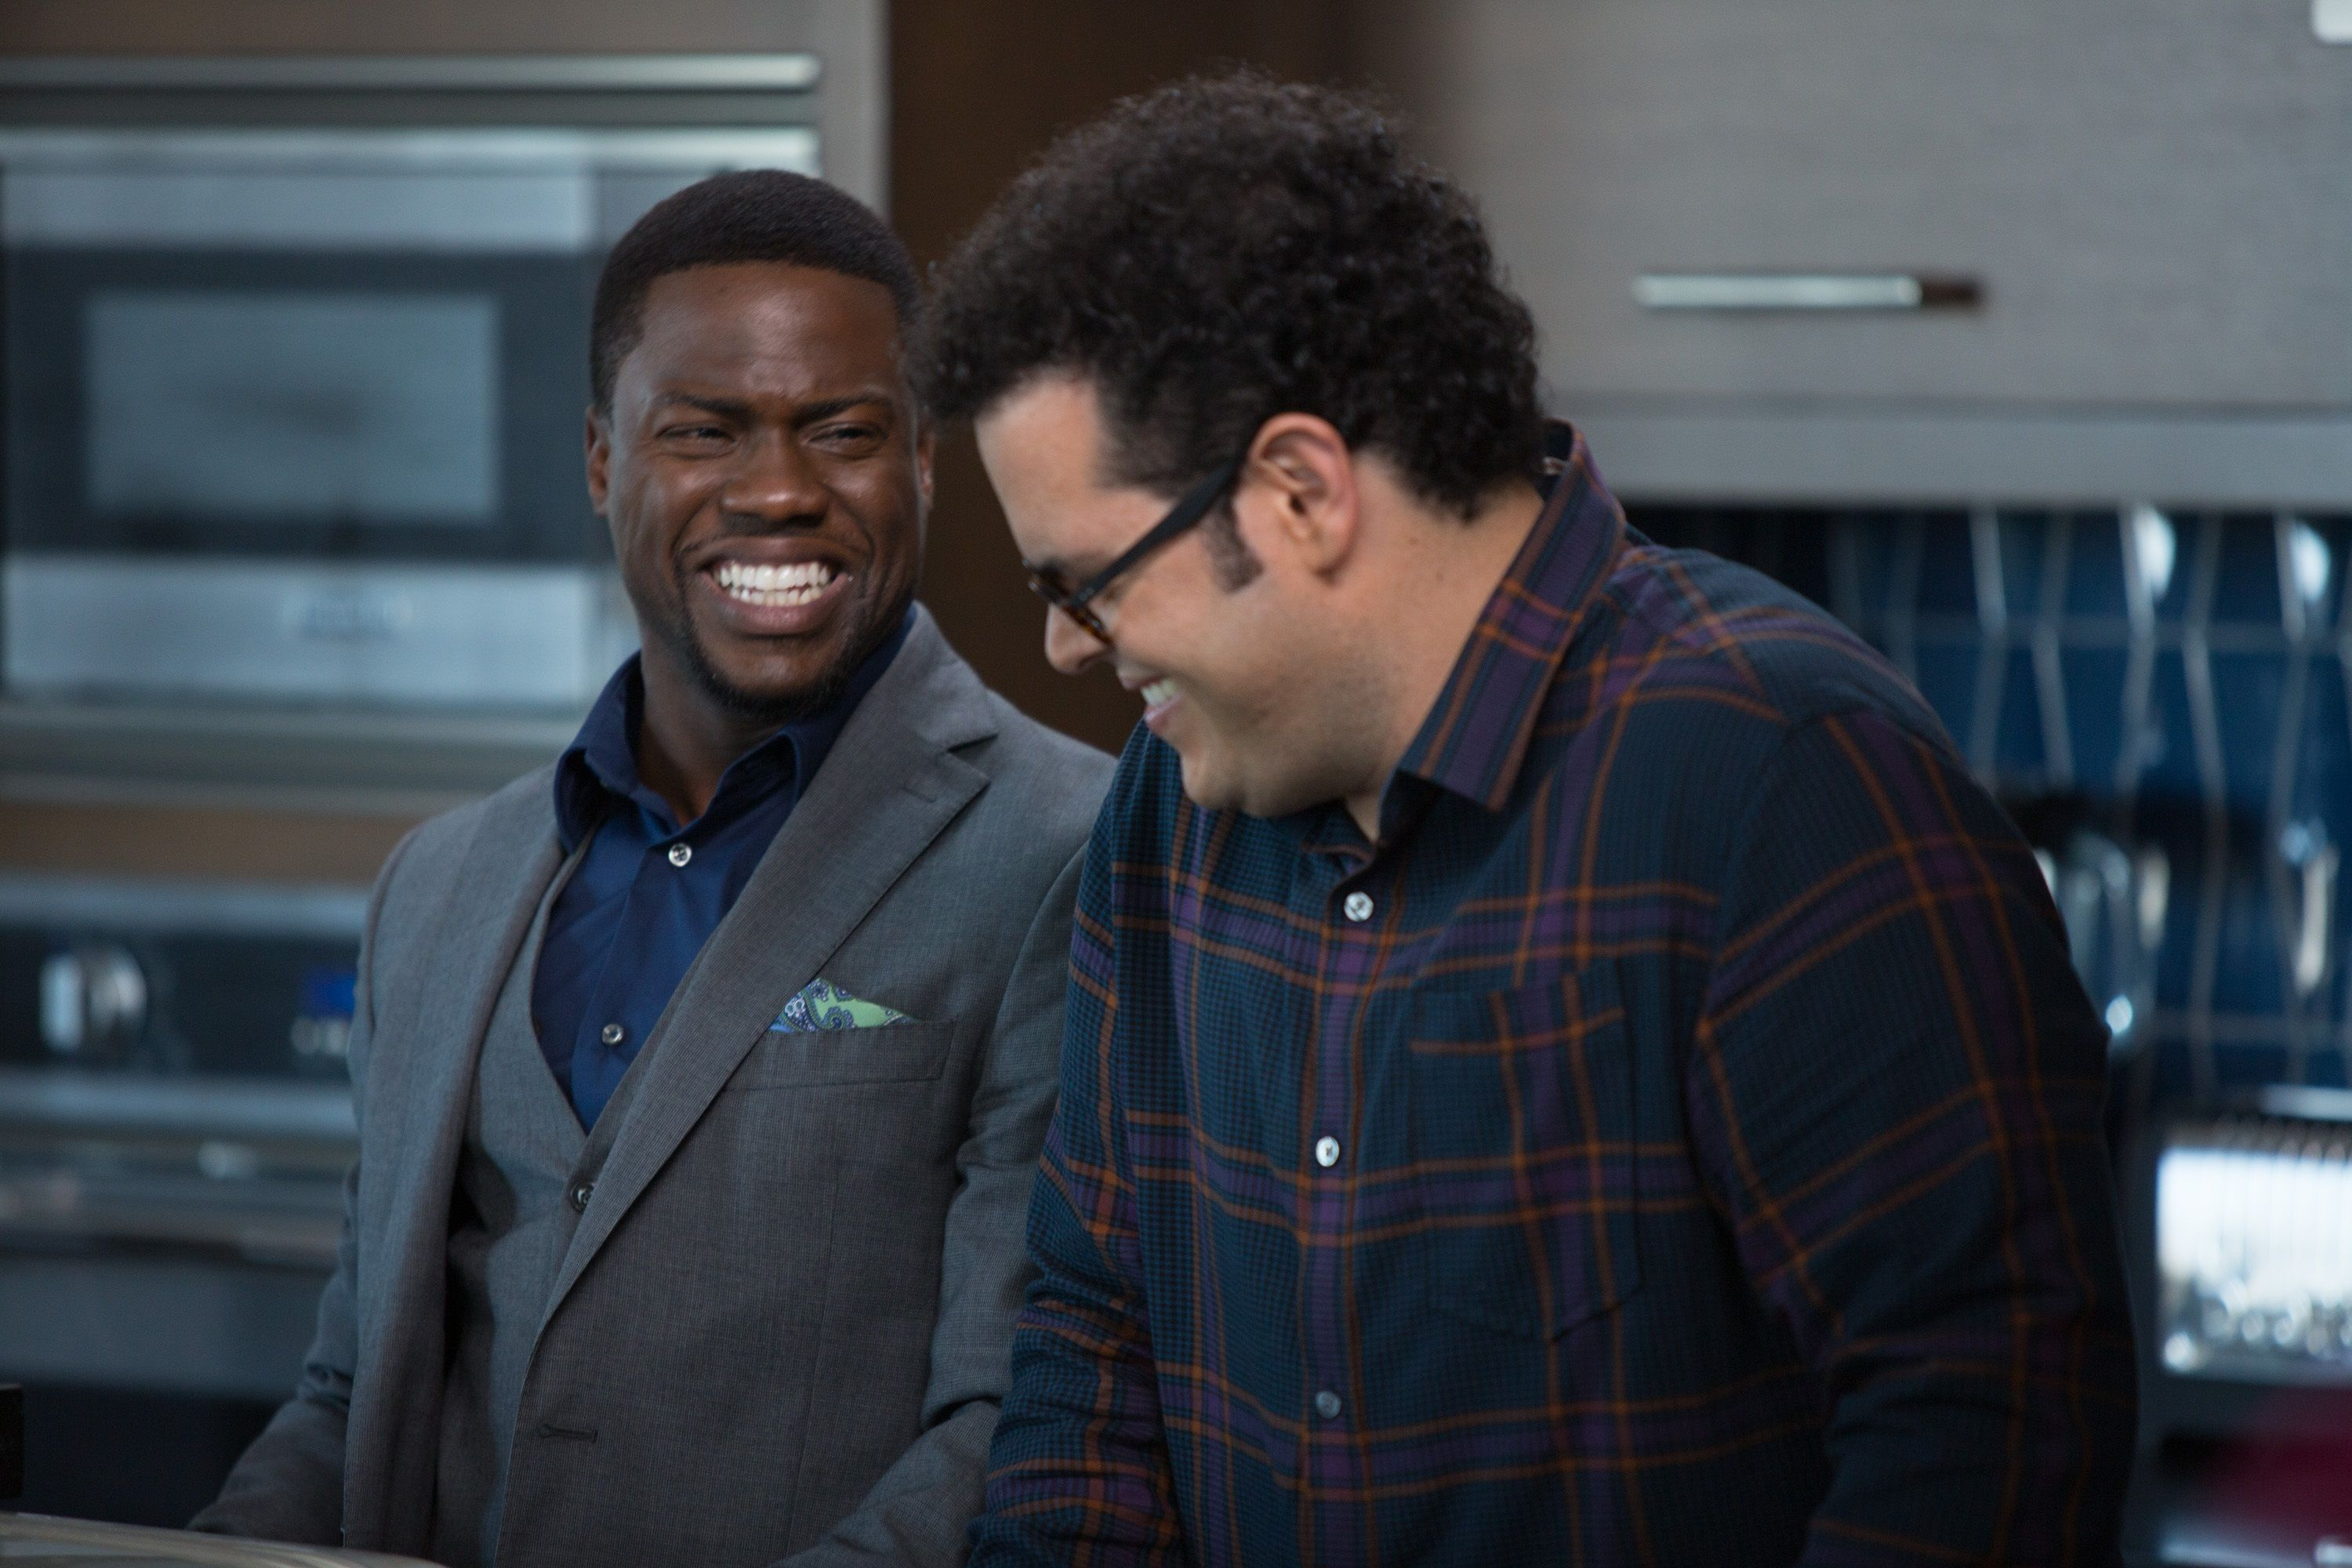 The Wedding Ringer Kevin Hart Josh Gad In Theaters Now Buy Tickets At Fandango Com The Wedding Ringer Wedding Ringer Kevin Hart